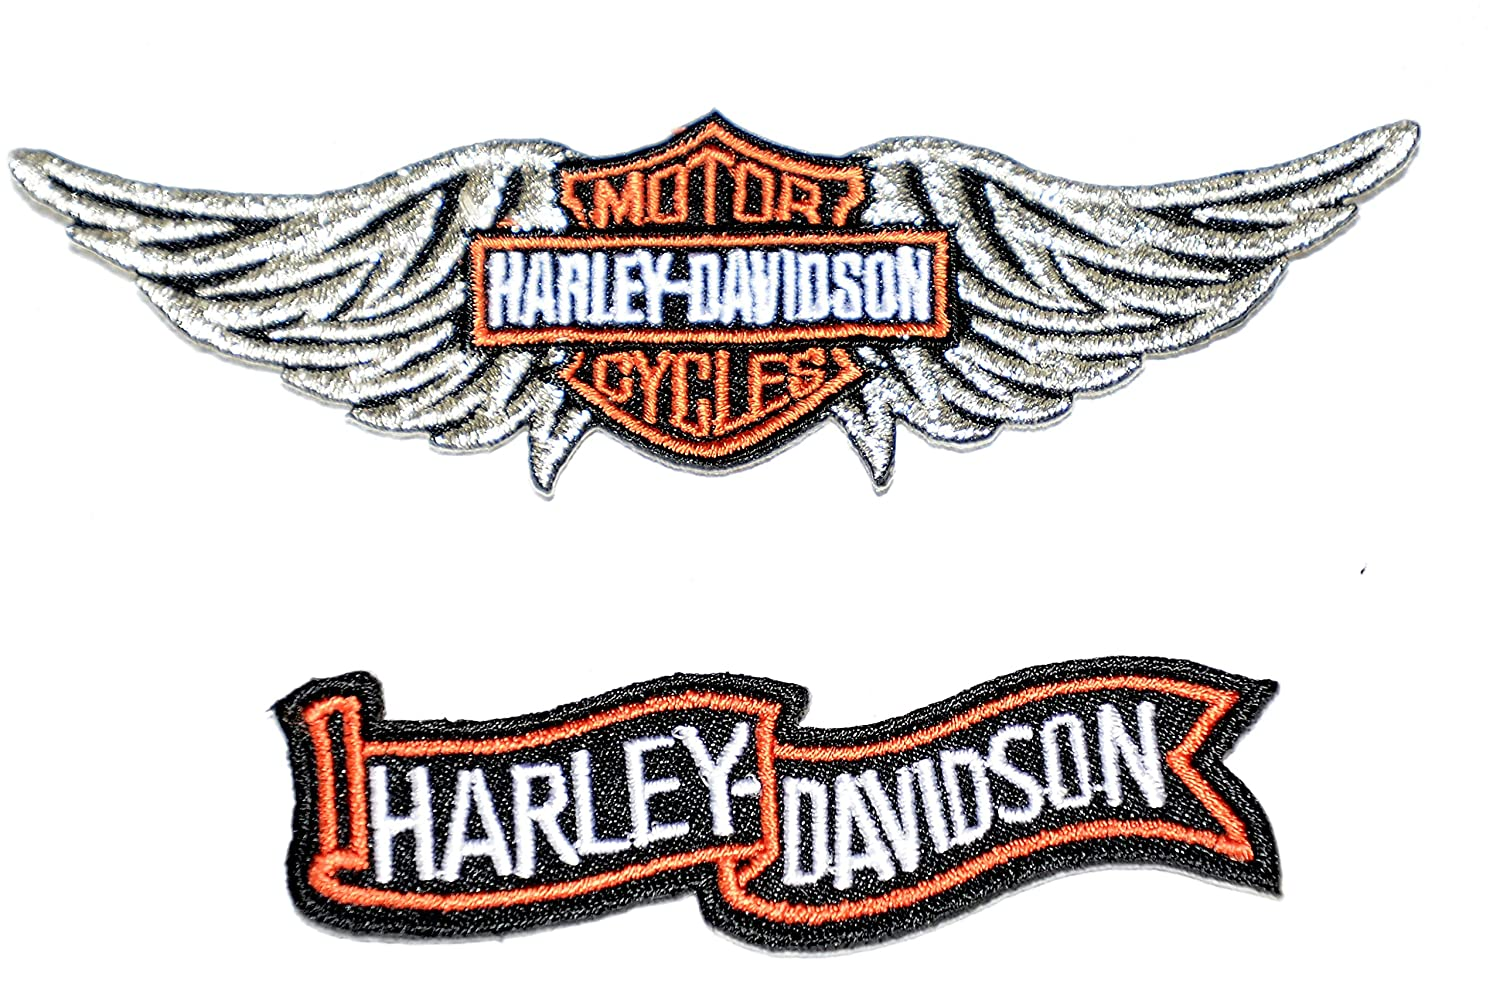 Born to be Wild Harley Davidson Motor Cycles Next Day Delivery .Sold by Deal from Home Set of 2 Small Harley Davidson Iron On Patches Sent from u.k